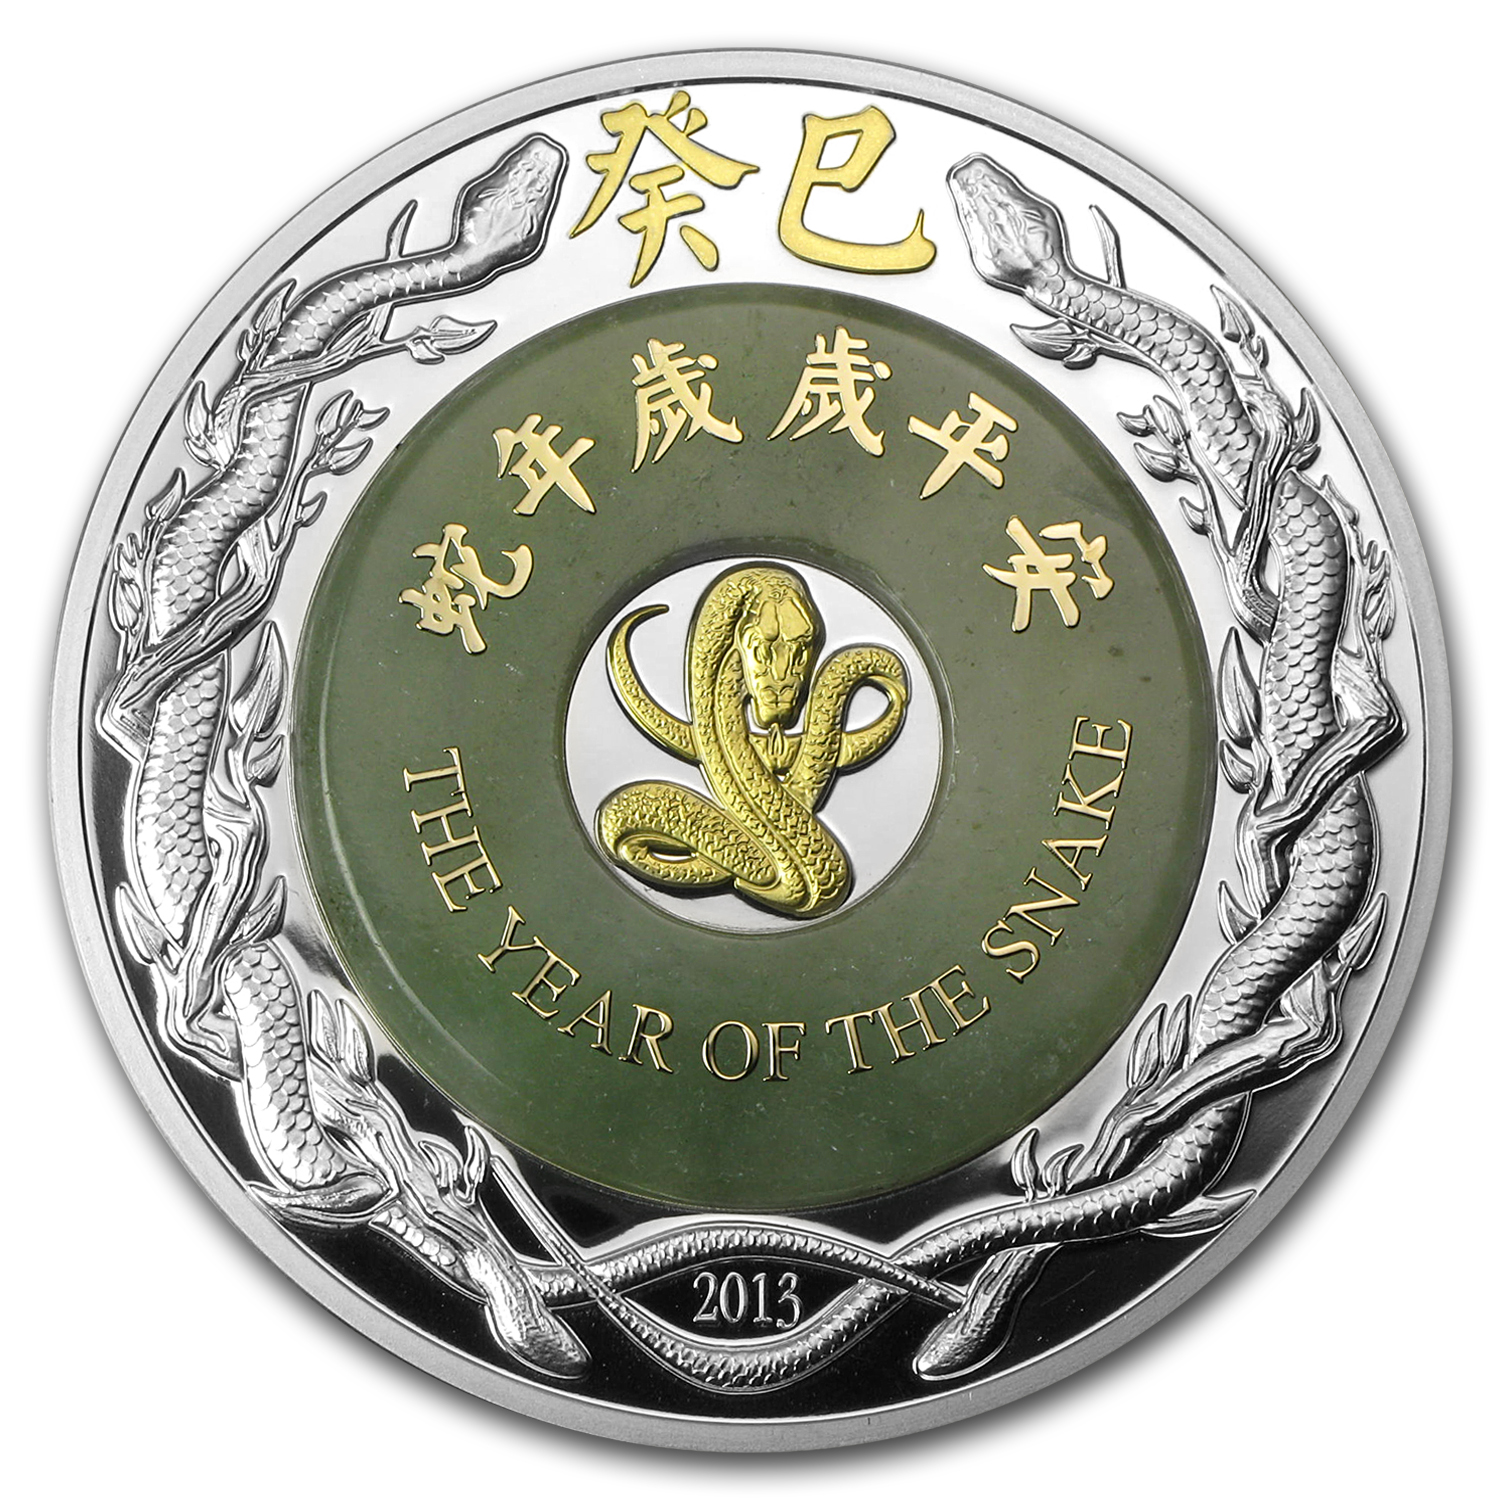 2013 Laos 2 oz Silver & Jade Year of the Snake Proof